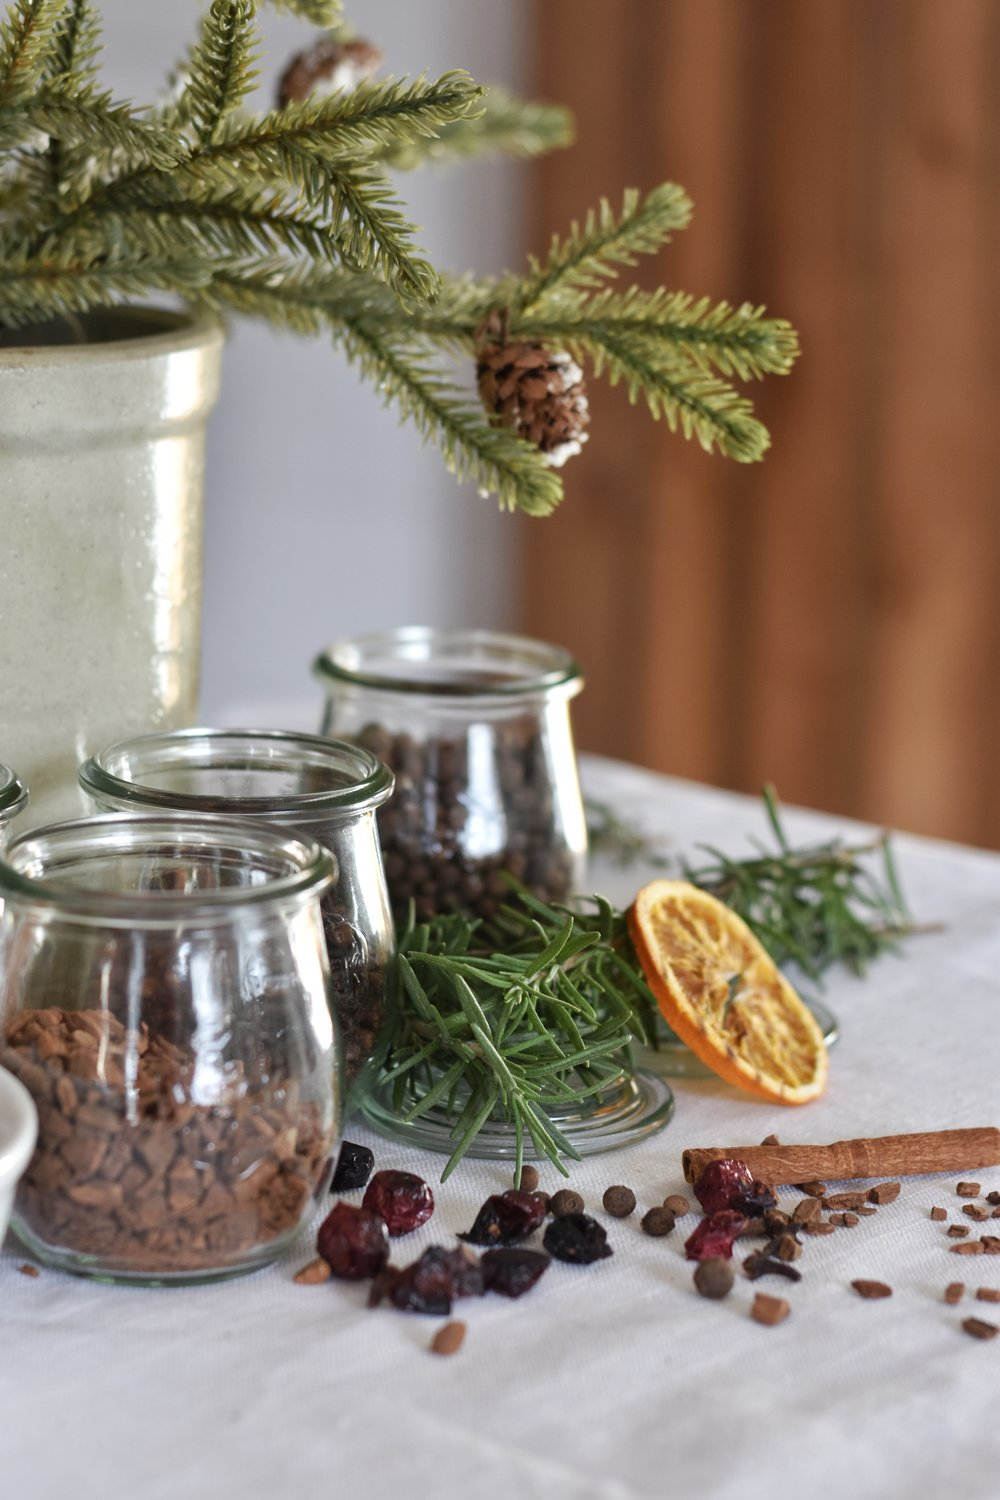 How to make the best smelling stove top potpourri for the Christmas season.